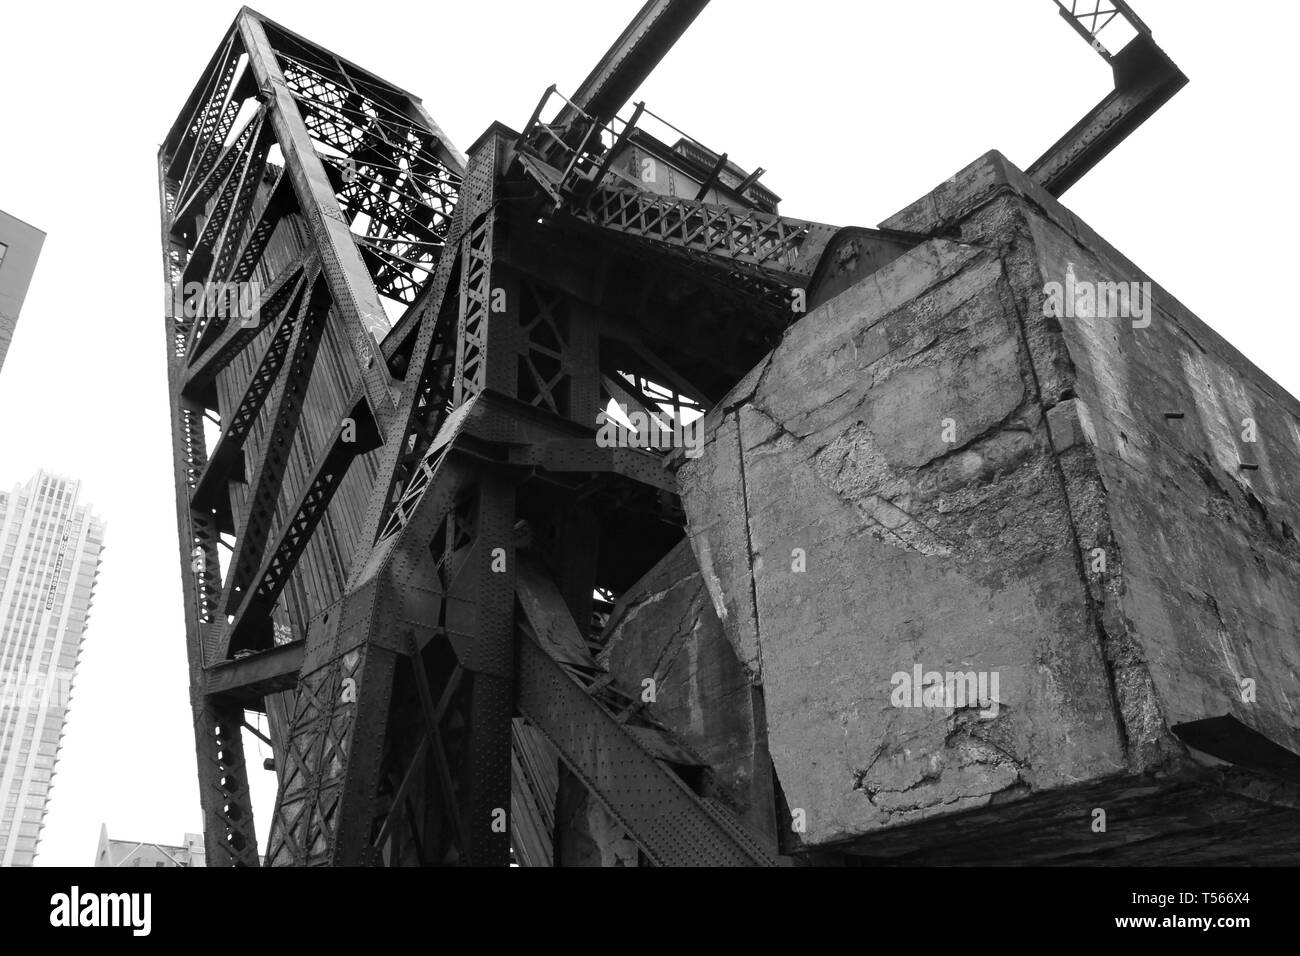 The Carroll Ave Railroad bridge, an abandoned bridge locked in a raised position over Wolf Point in the Loop, Chicago, Illinois - Stock Image